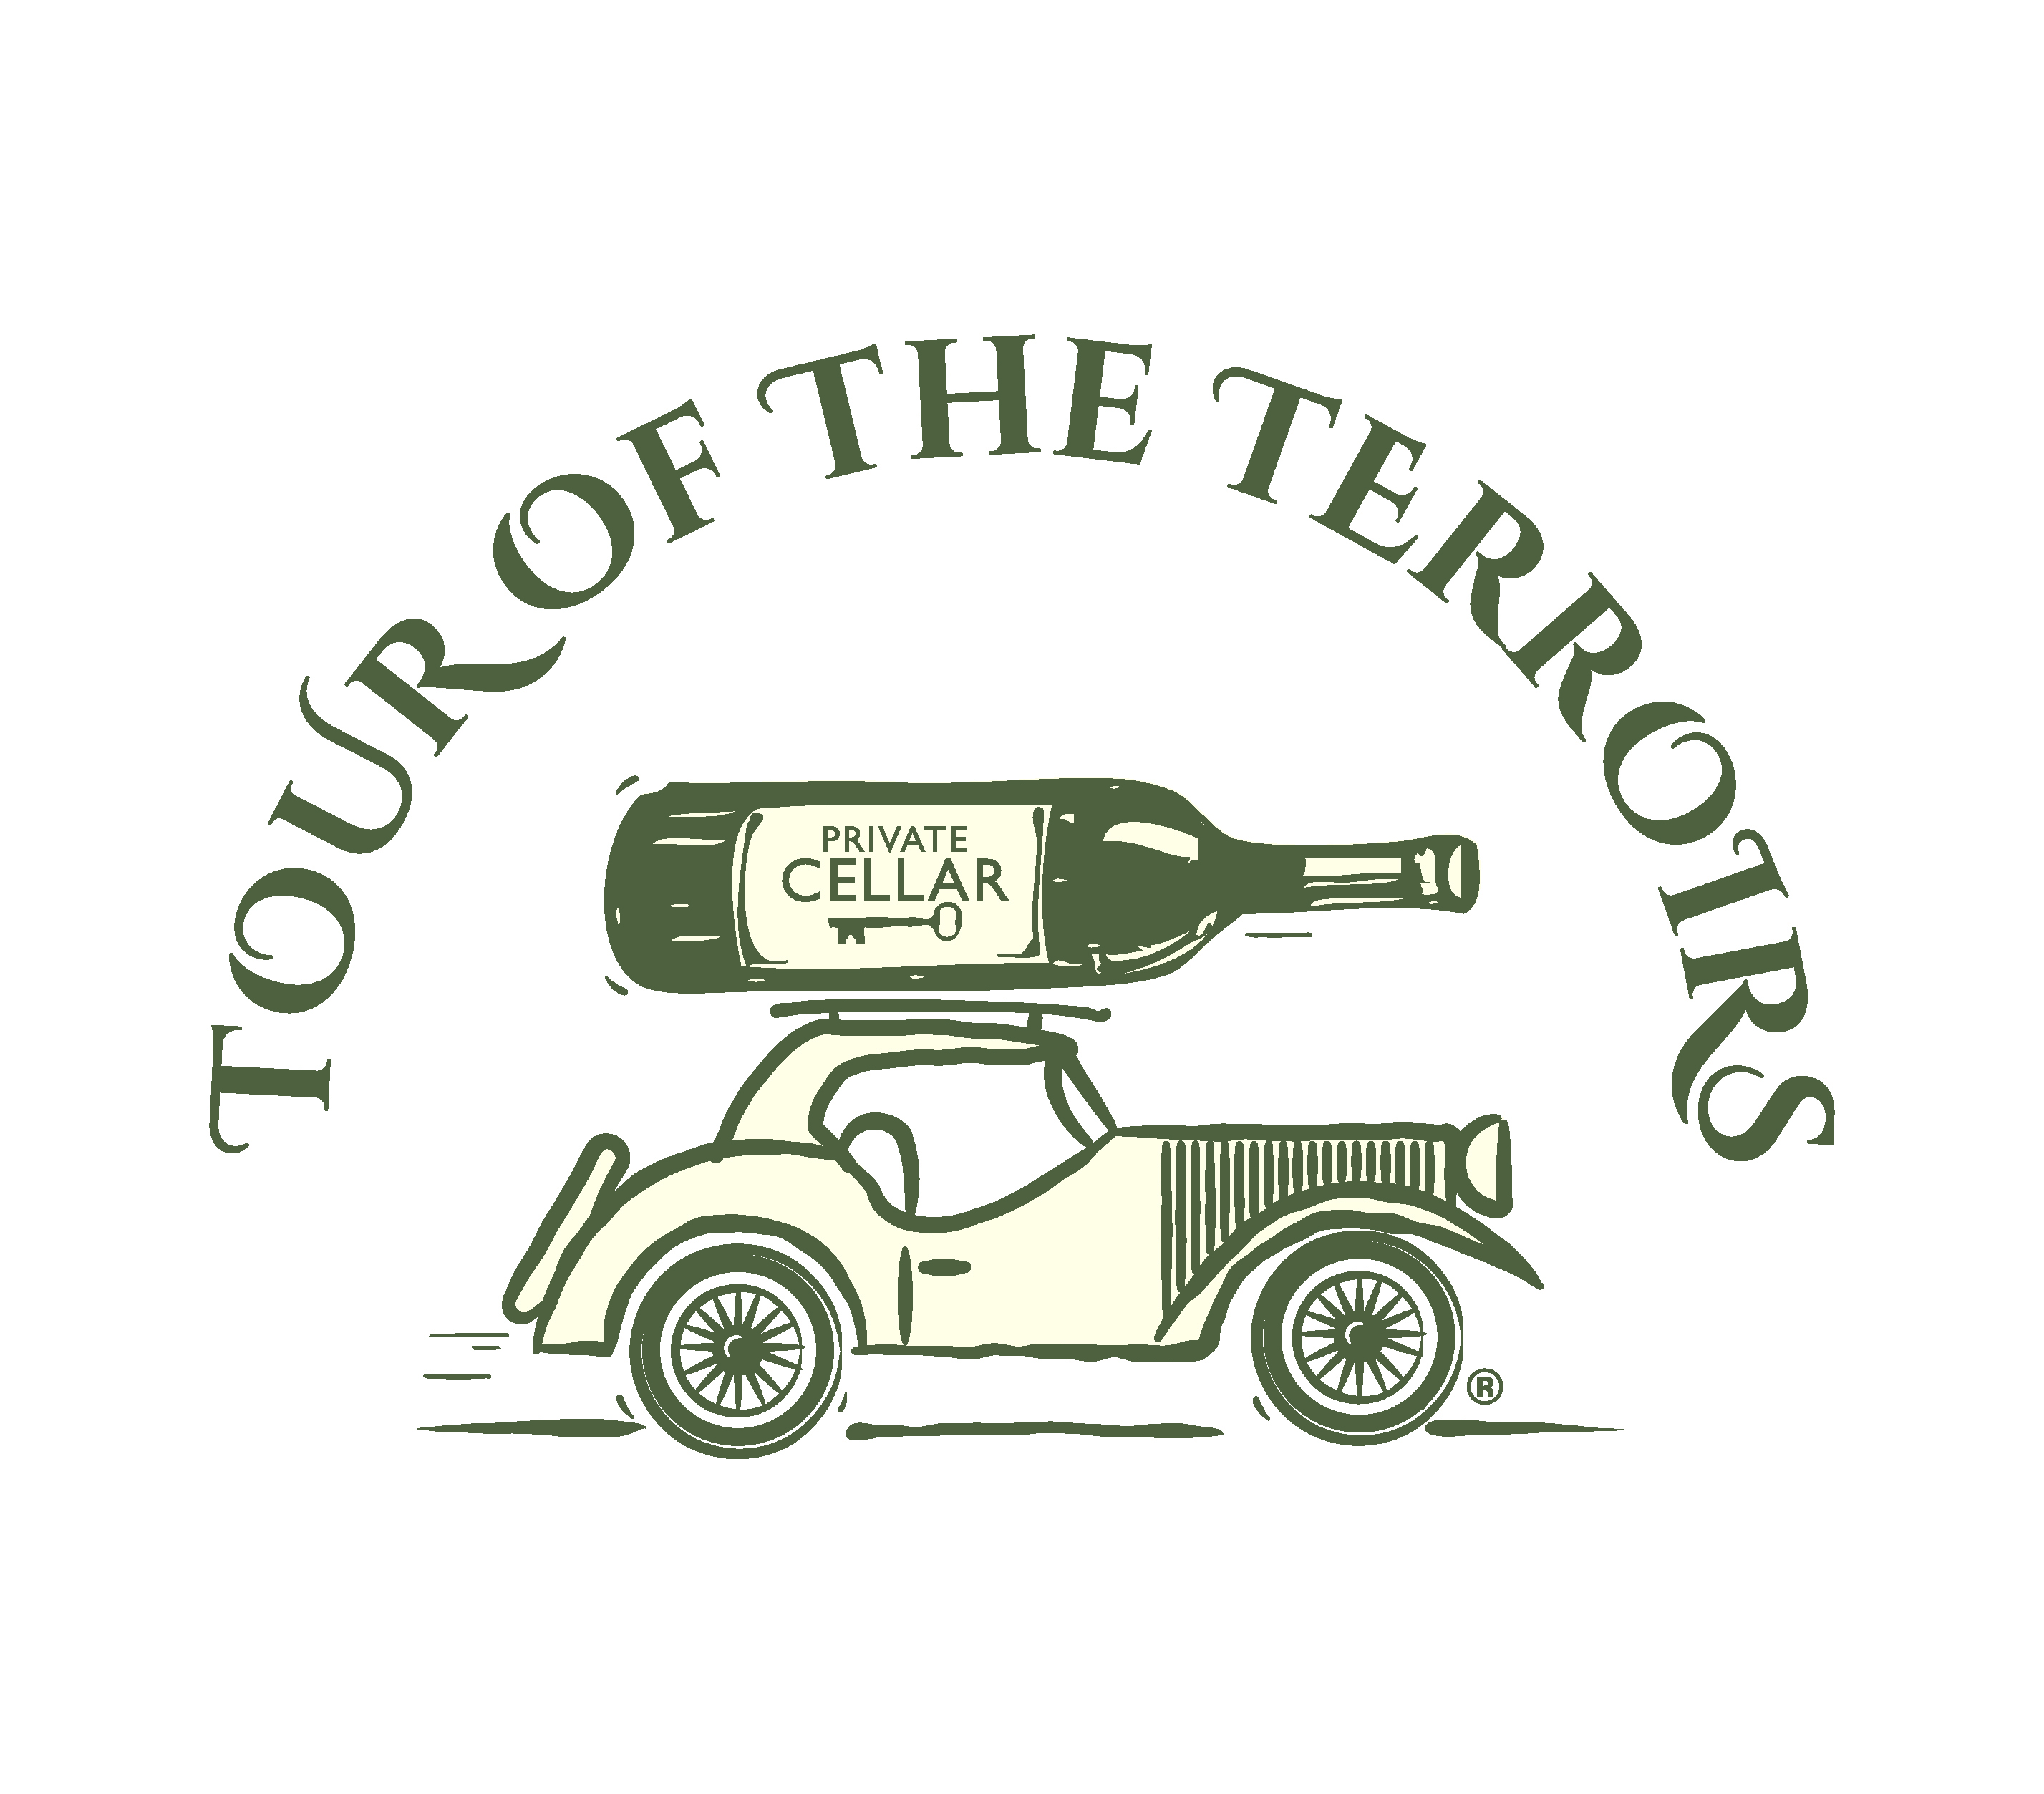 Tour of the Terroirs